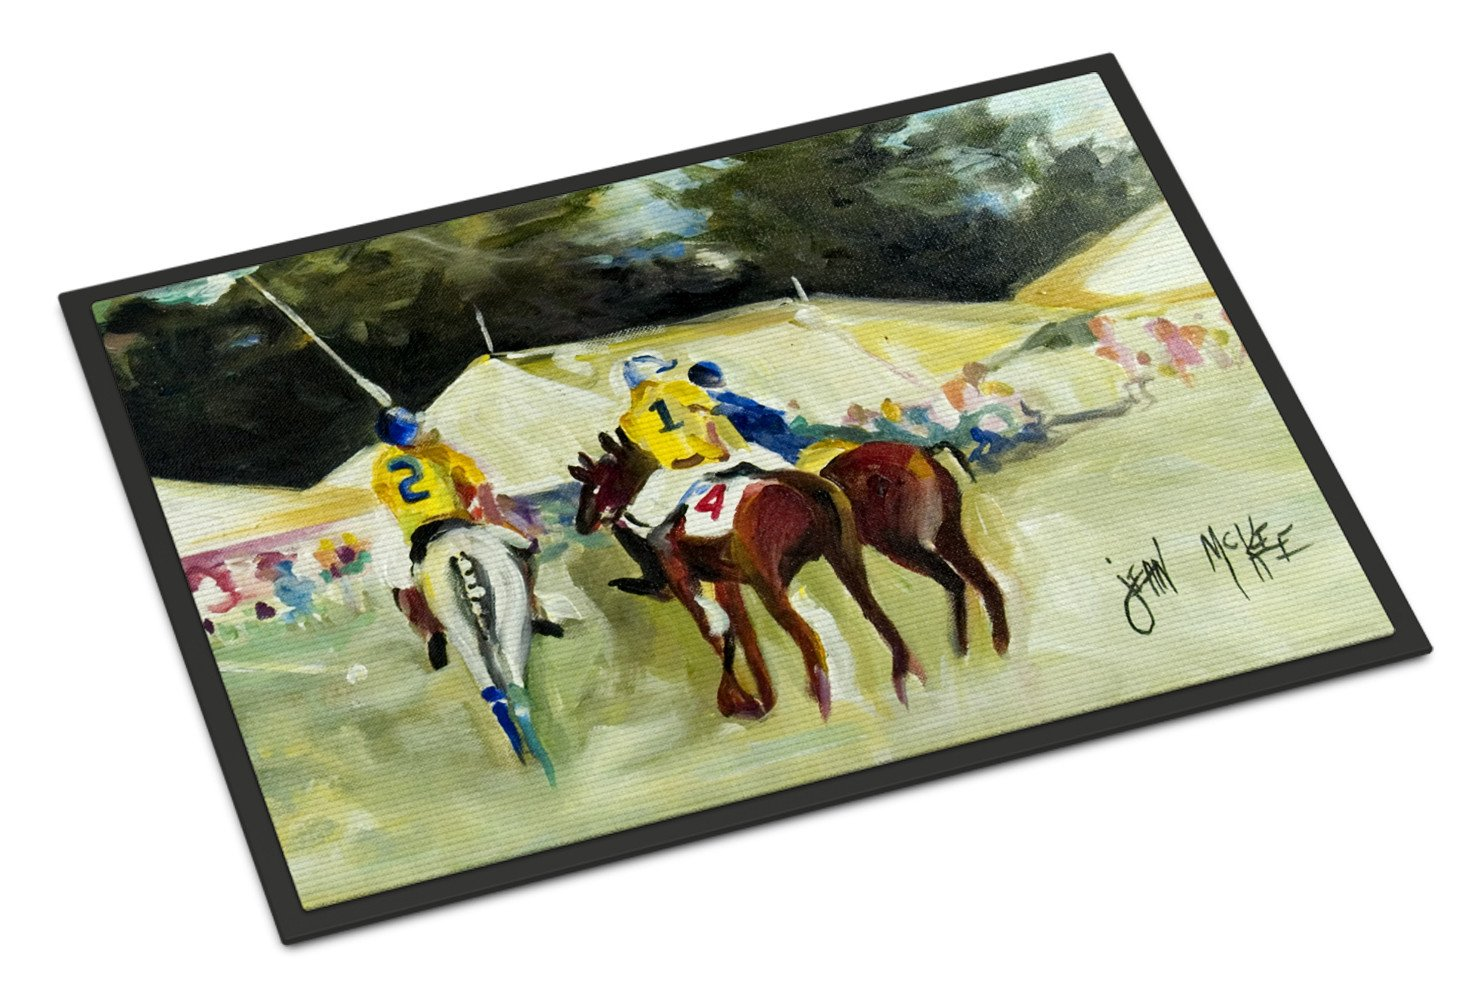 Polo at the Point Indoor or Outdoor Mat 24x36 JMK1006JMAT by Caroline's Treasures